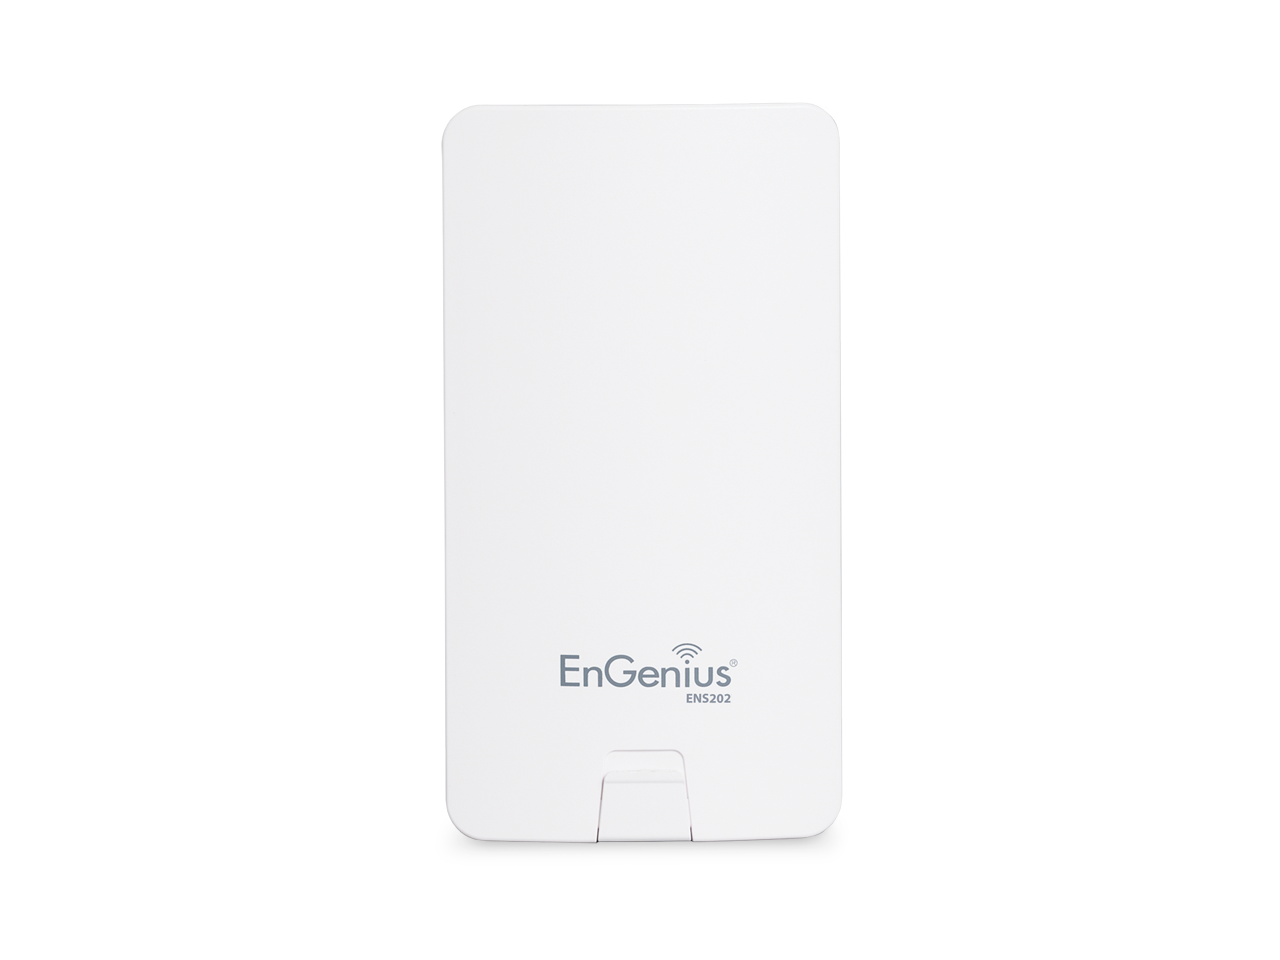 ENGENİUS ENS202 - Outdoor Wireless Ethernet Bridge; N300 2.4 GHz